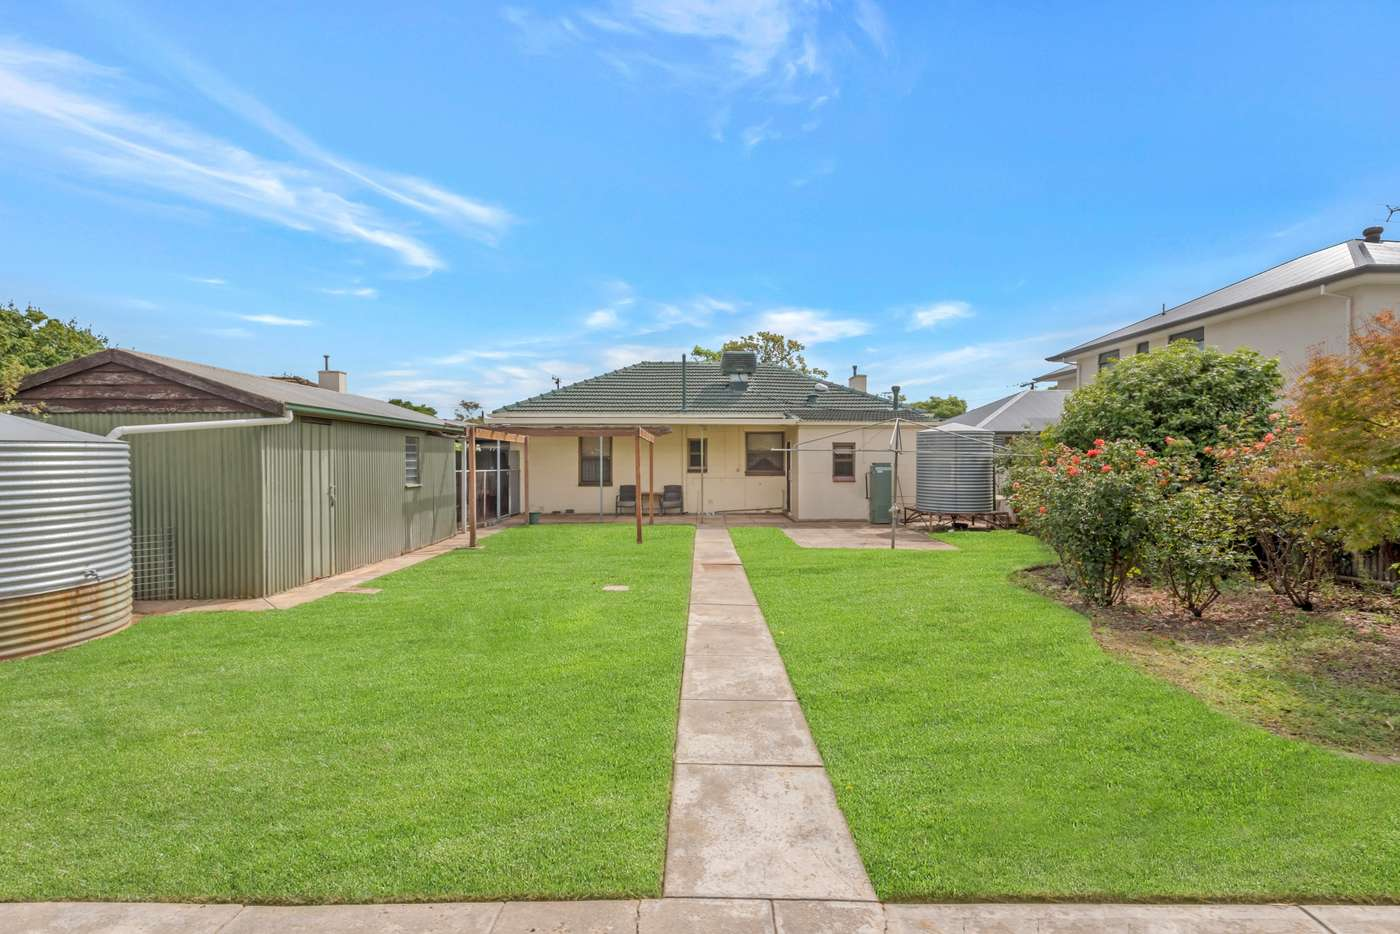 Fifth view of Homely house listing, 17 Comley Street, Brighton SA 5048